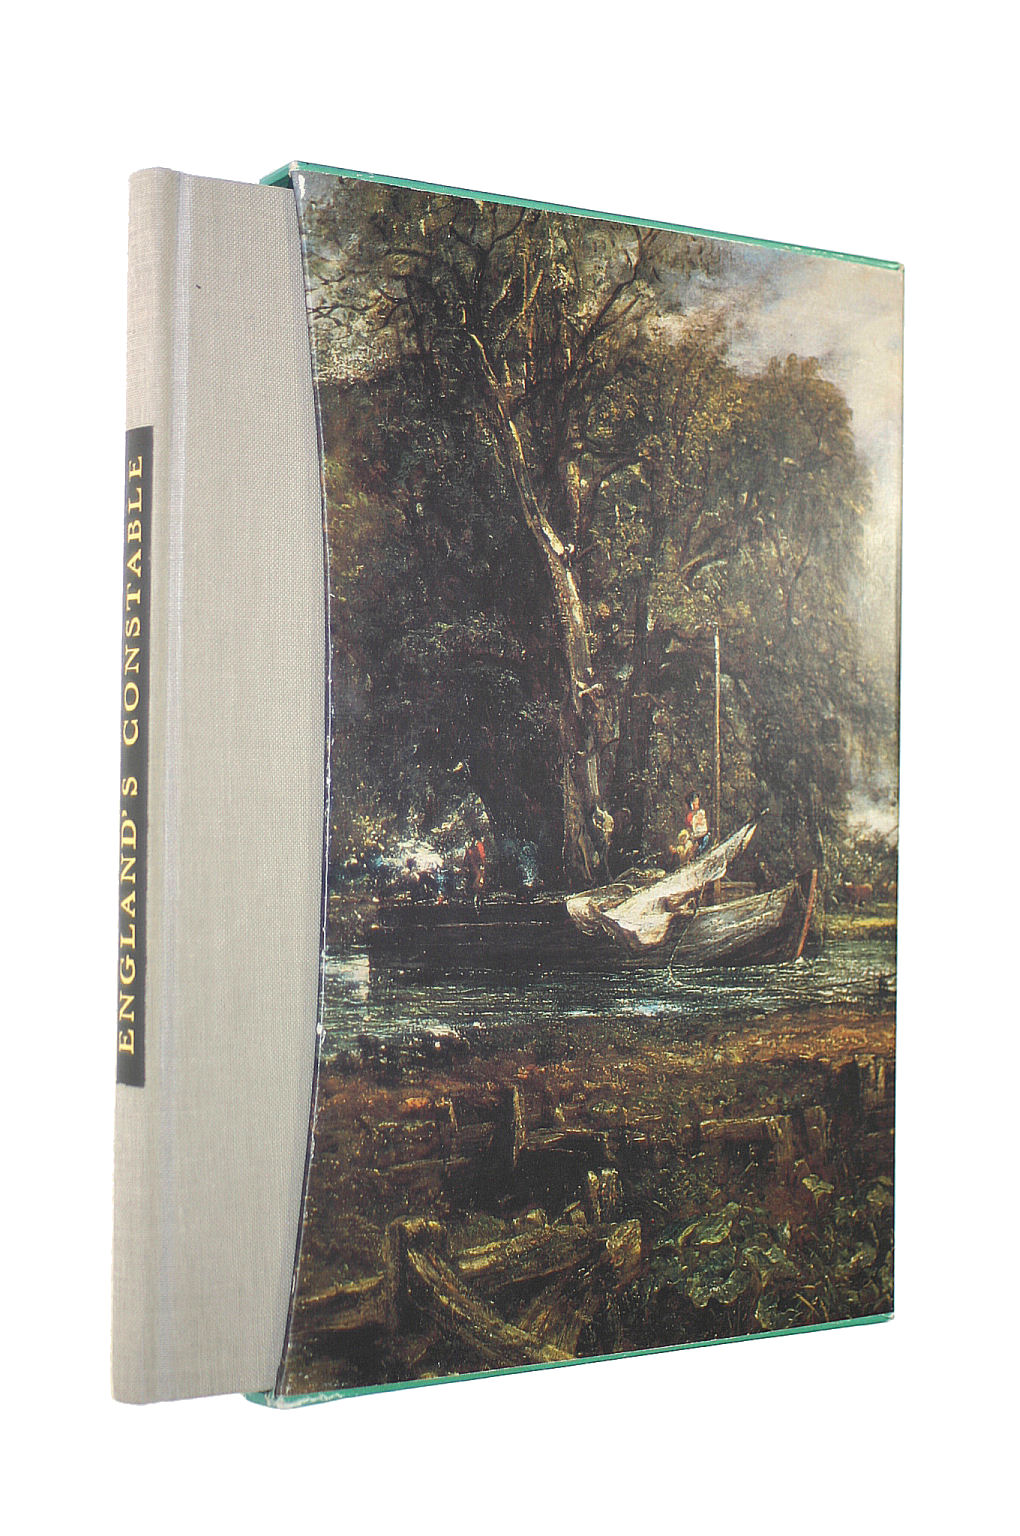 Image for England's Constable Folio Society Edition